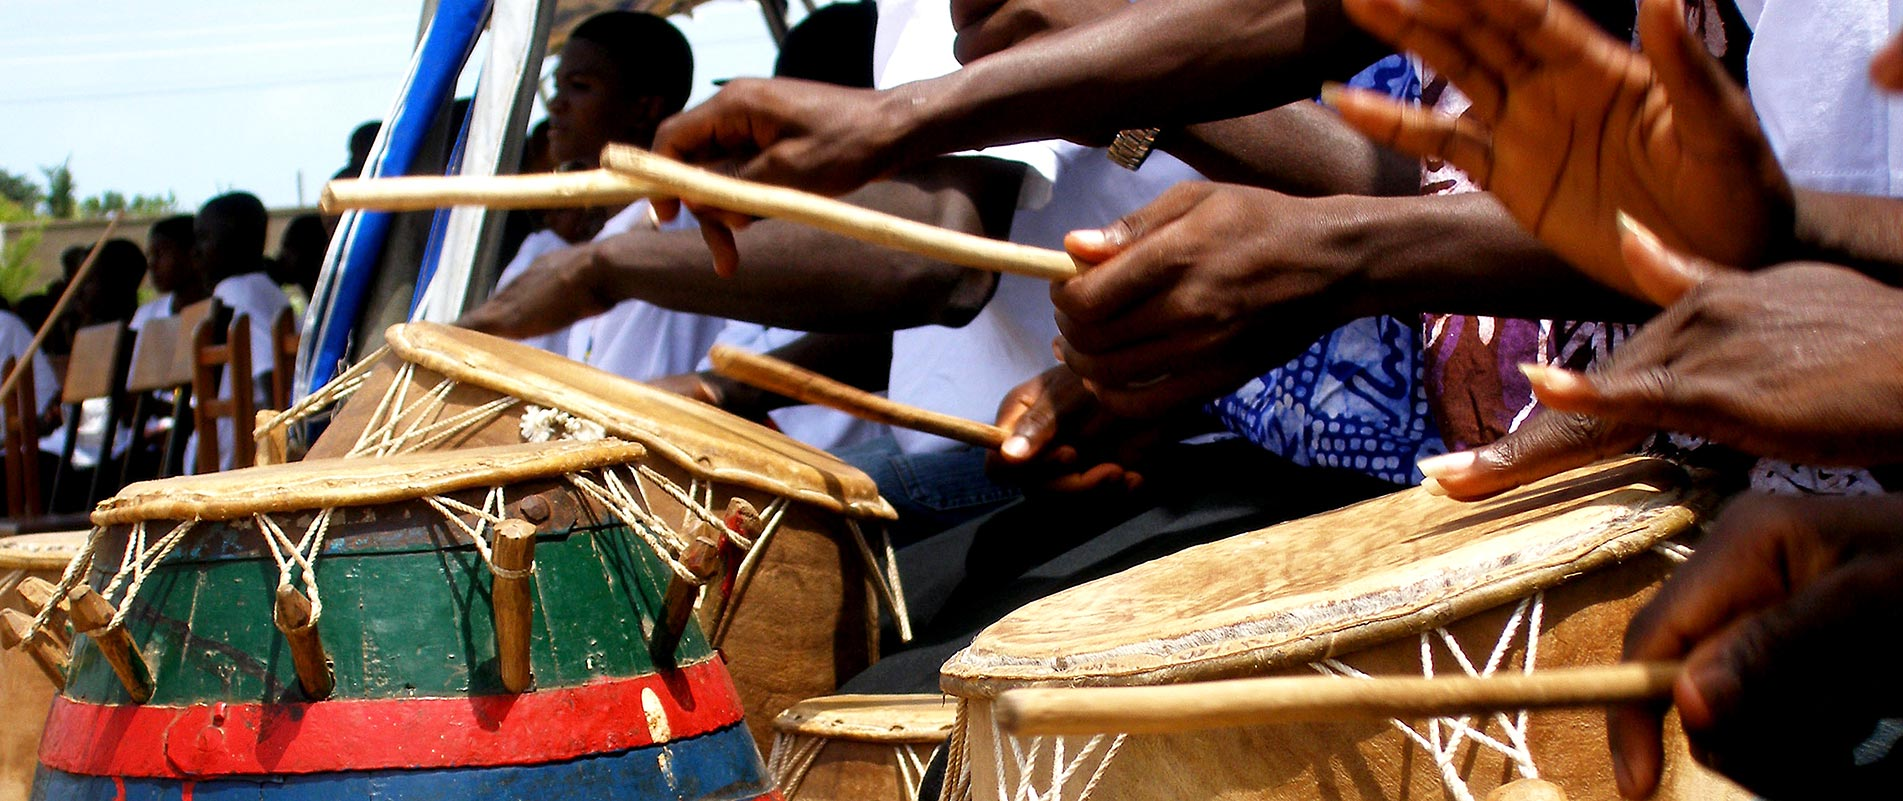 African drumming during Panafest in Accra, Ghana.